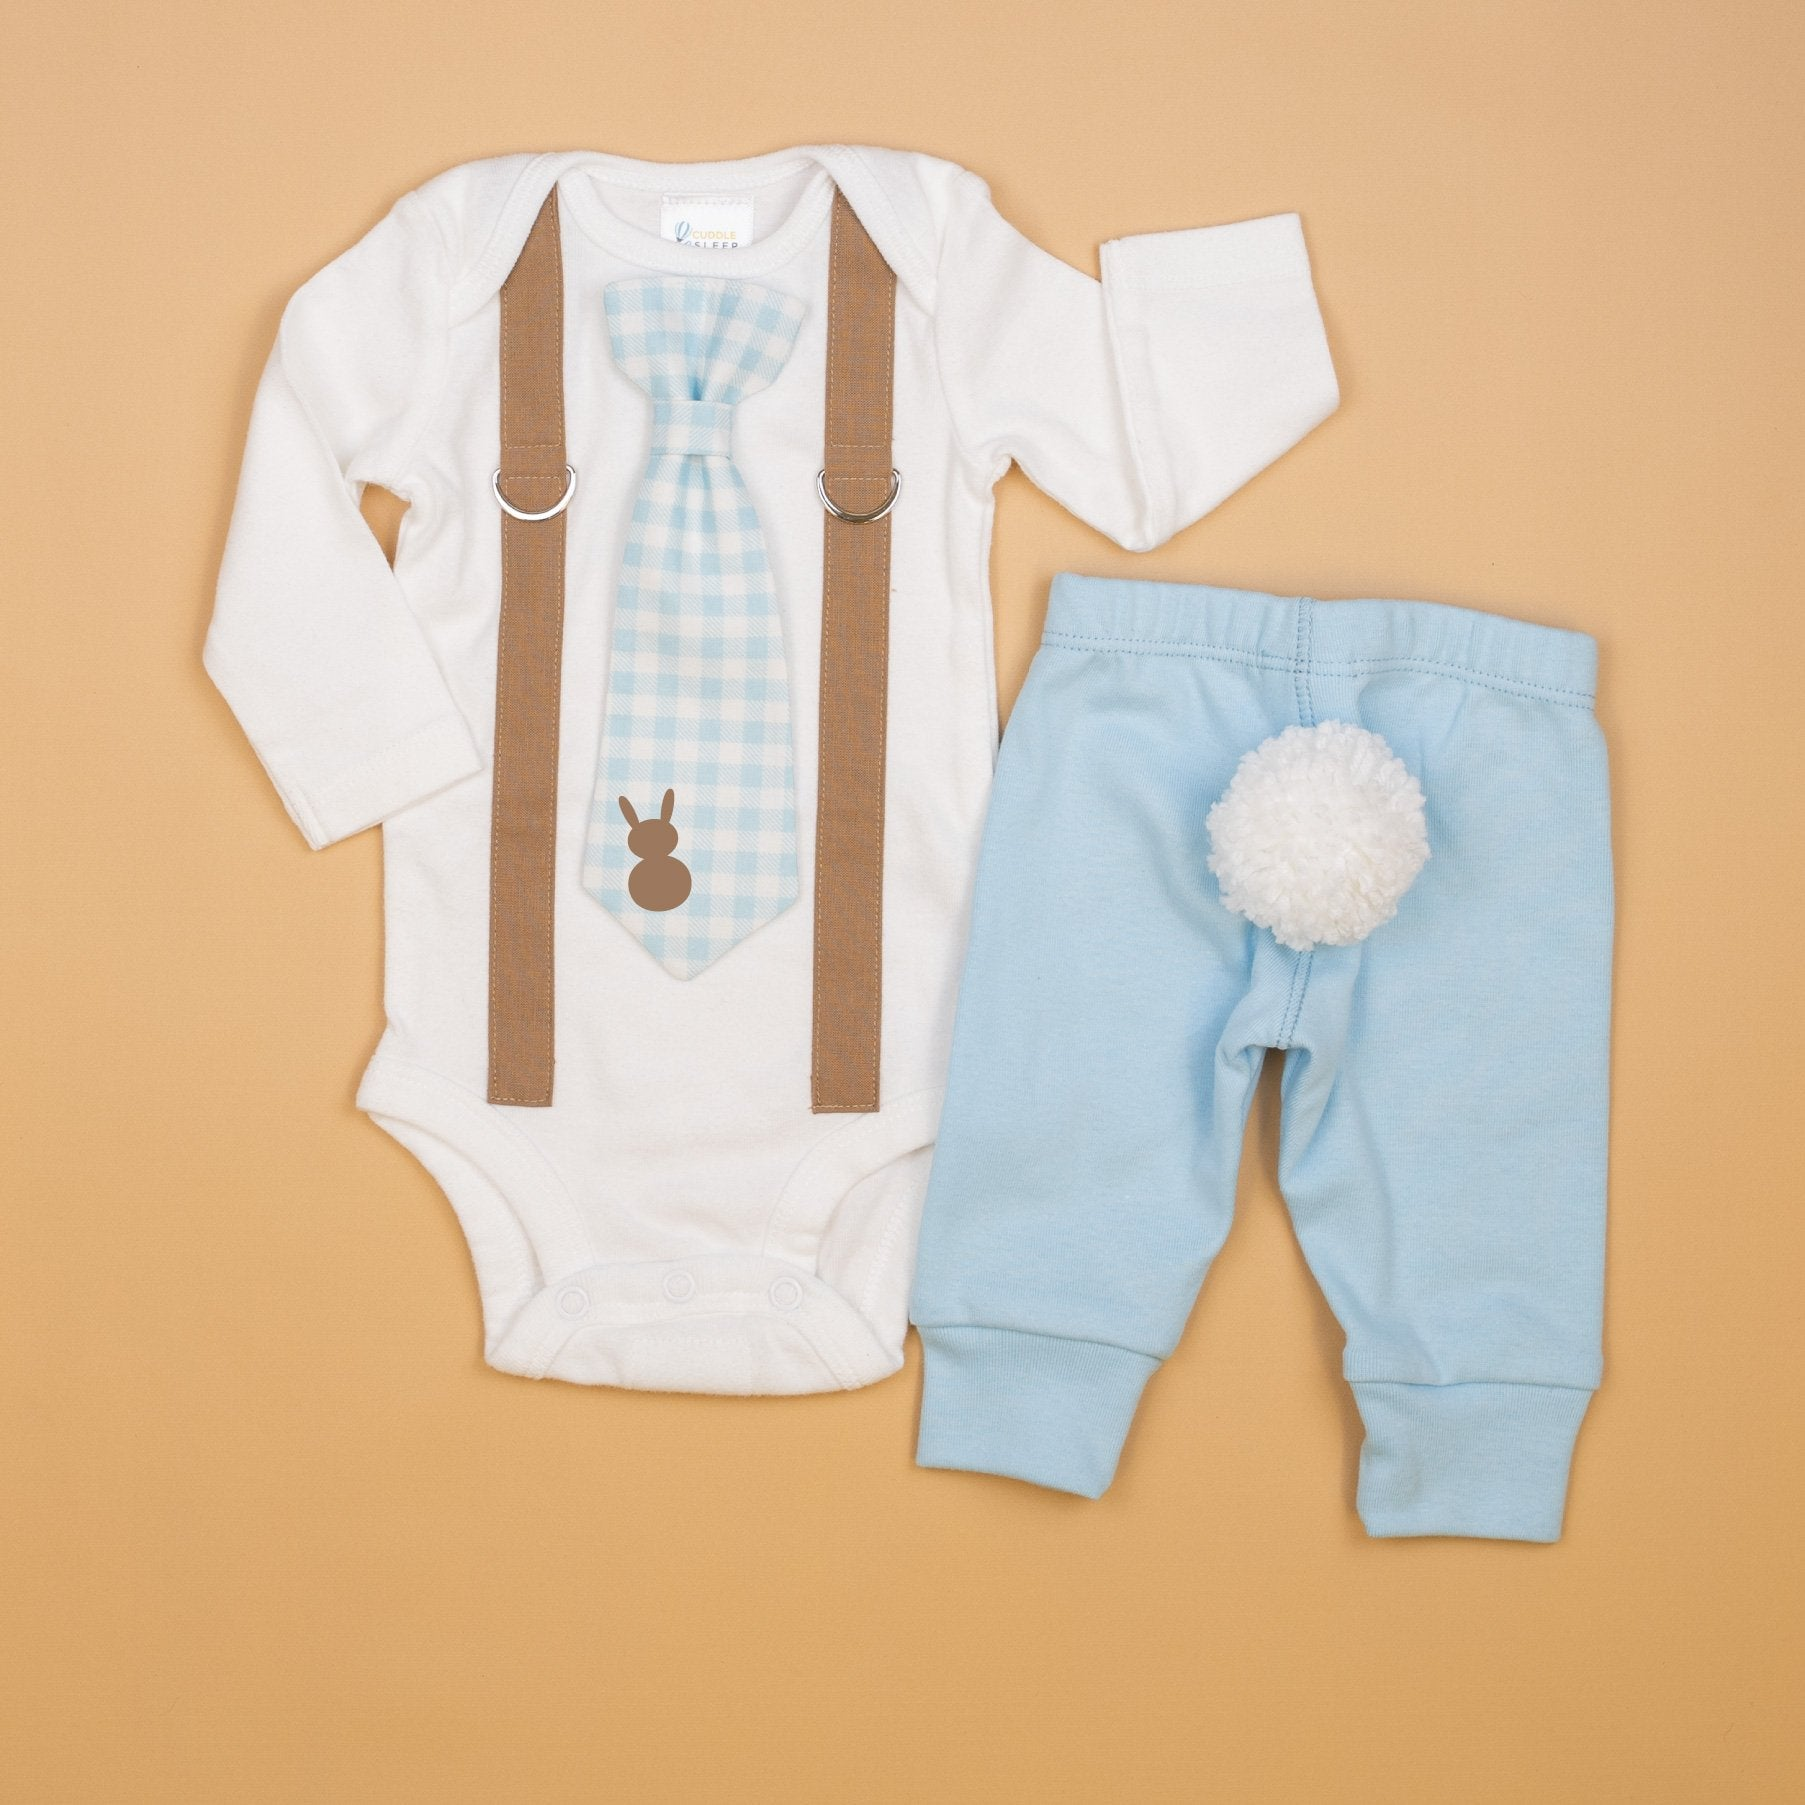 Christmas Holiday Chose Any Tie Baby Boy Blue Seersucker Tie Onesie Bodysuit with Any Personalization Children/'s Fashion. Stripes